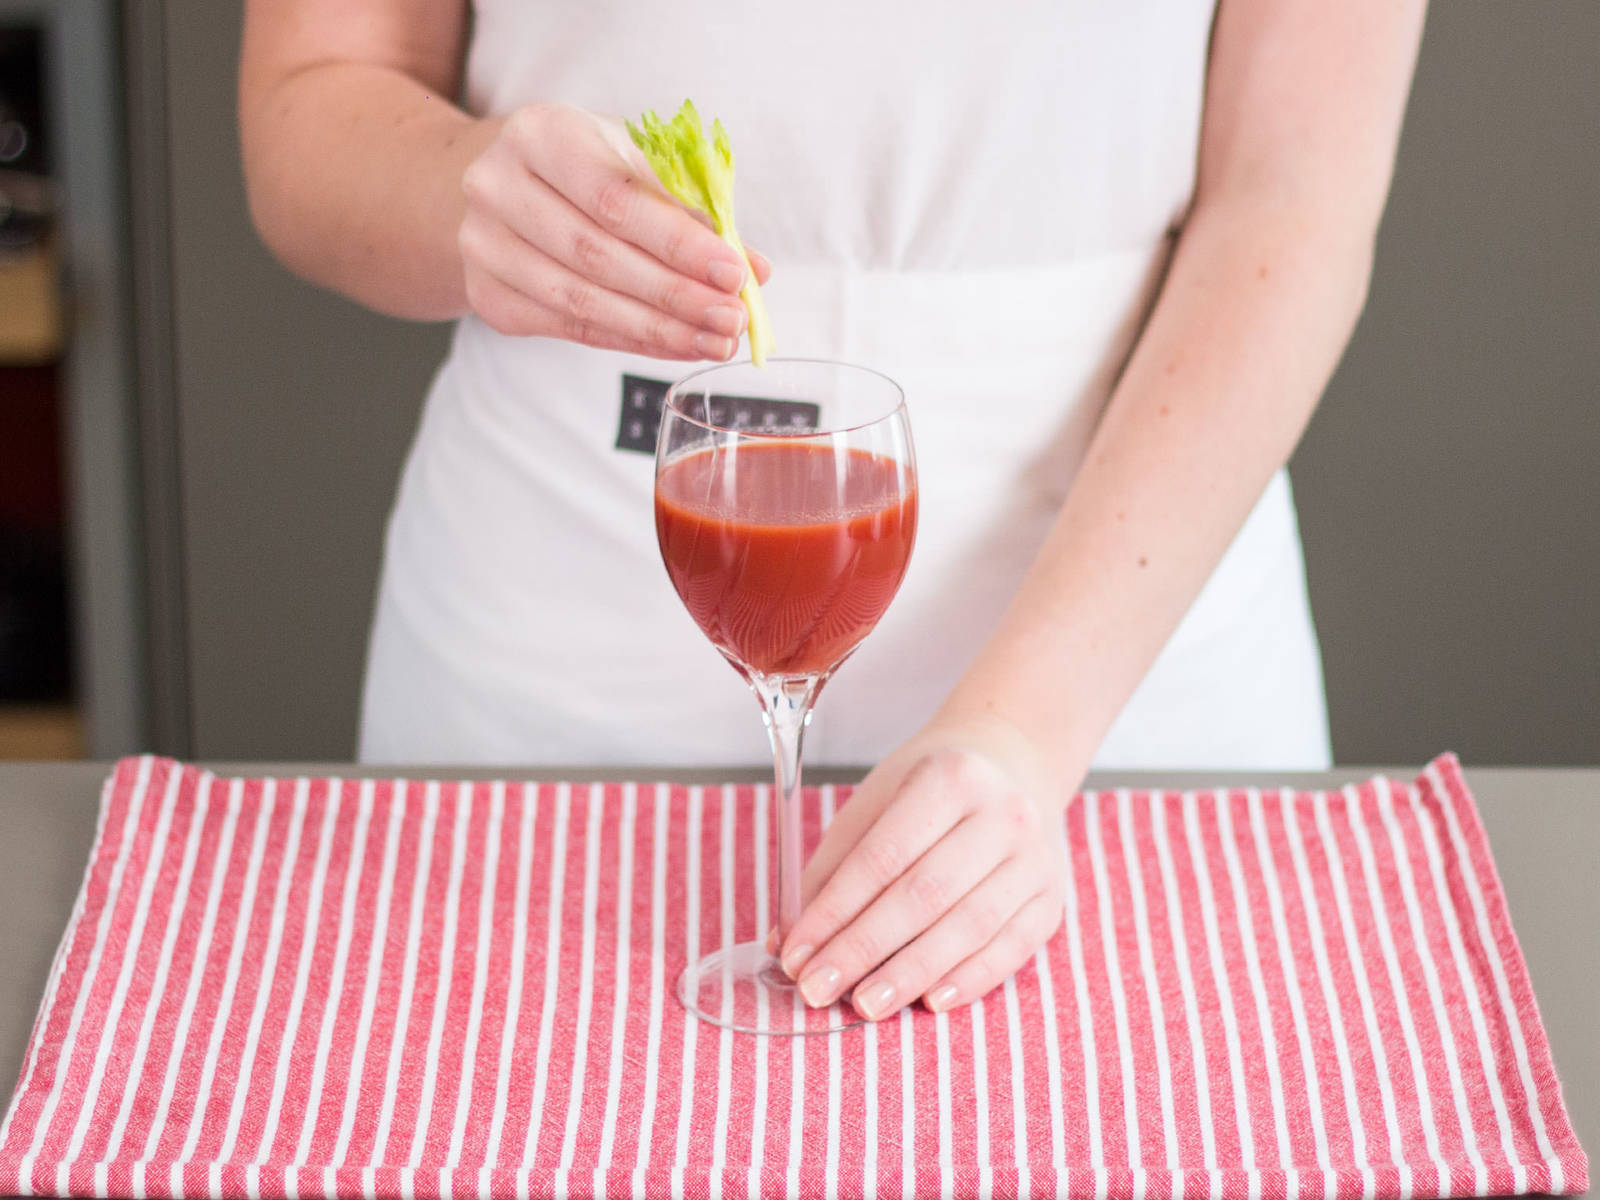 Pour into a glass. Garnish with celery and freshly ground black pepper. Enjoy with brunch!